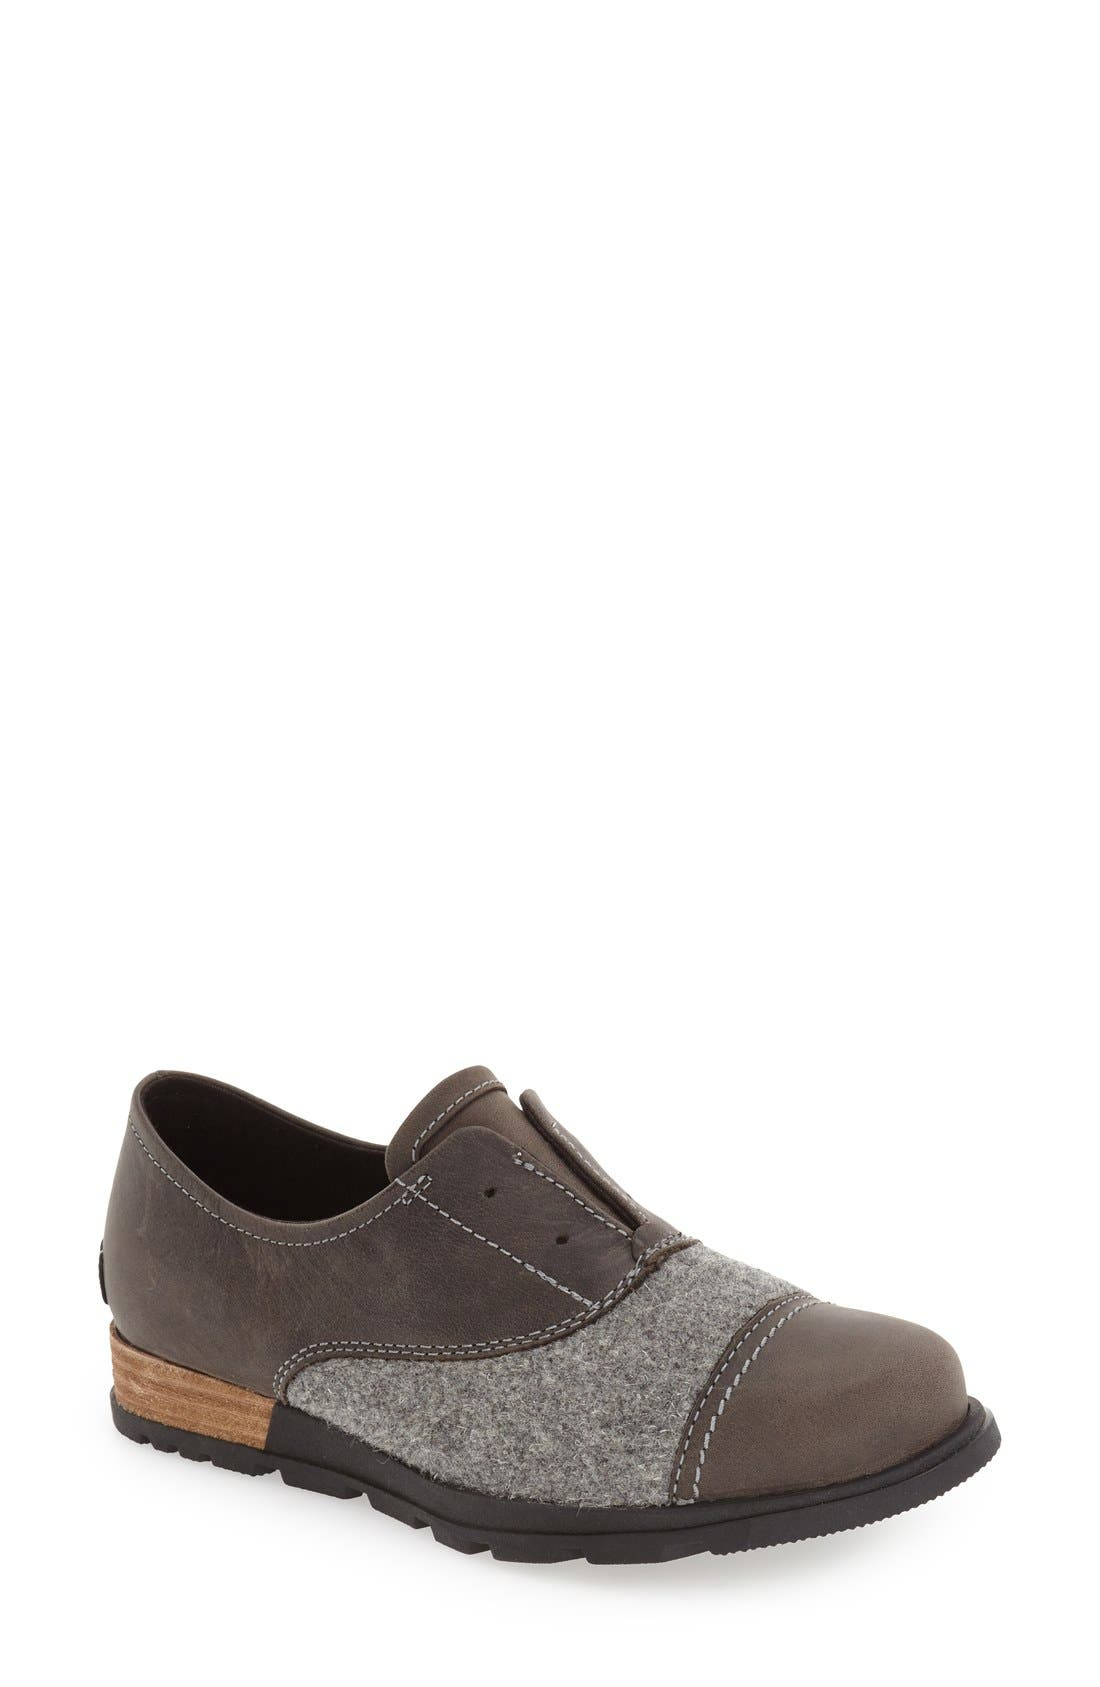 SOREL 'Major' Slip-On Oxford